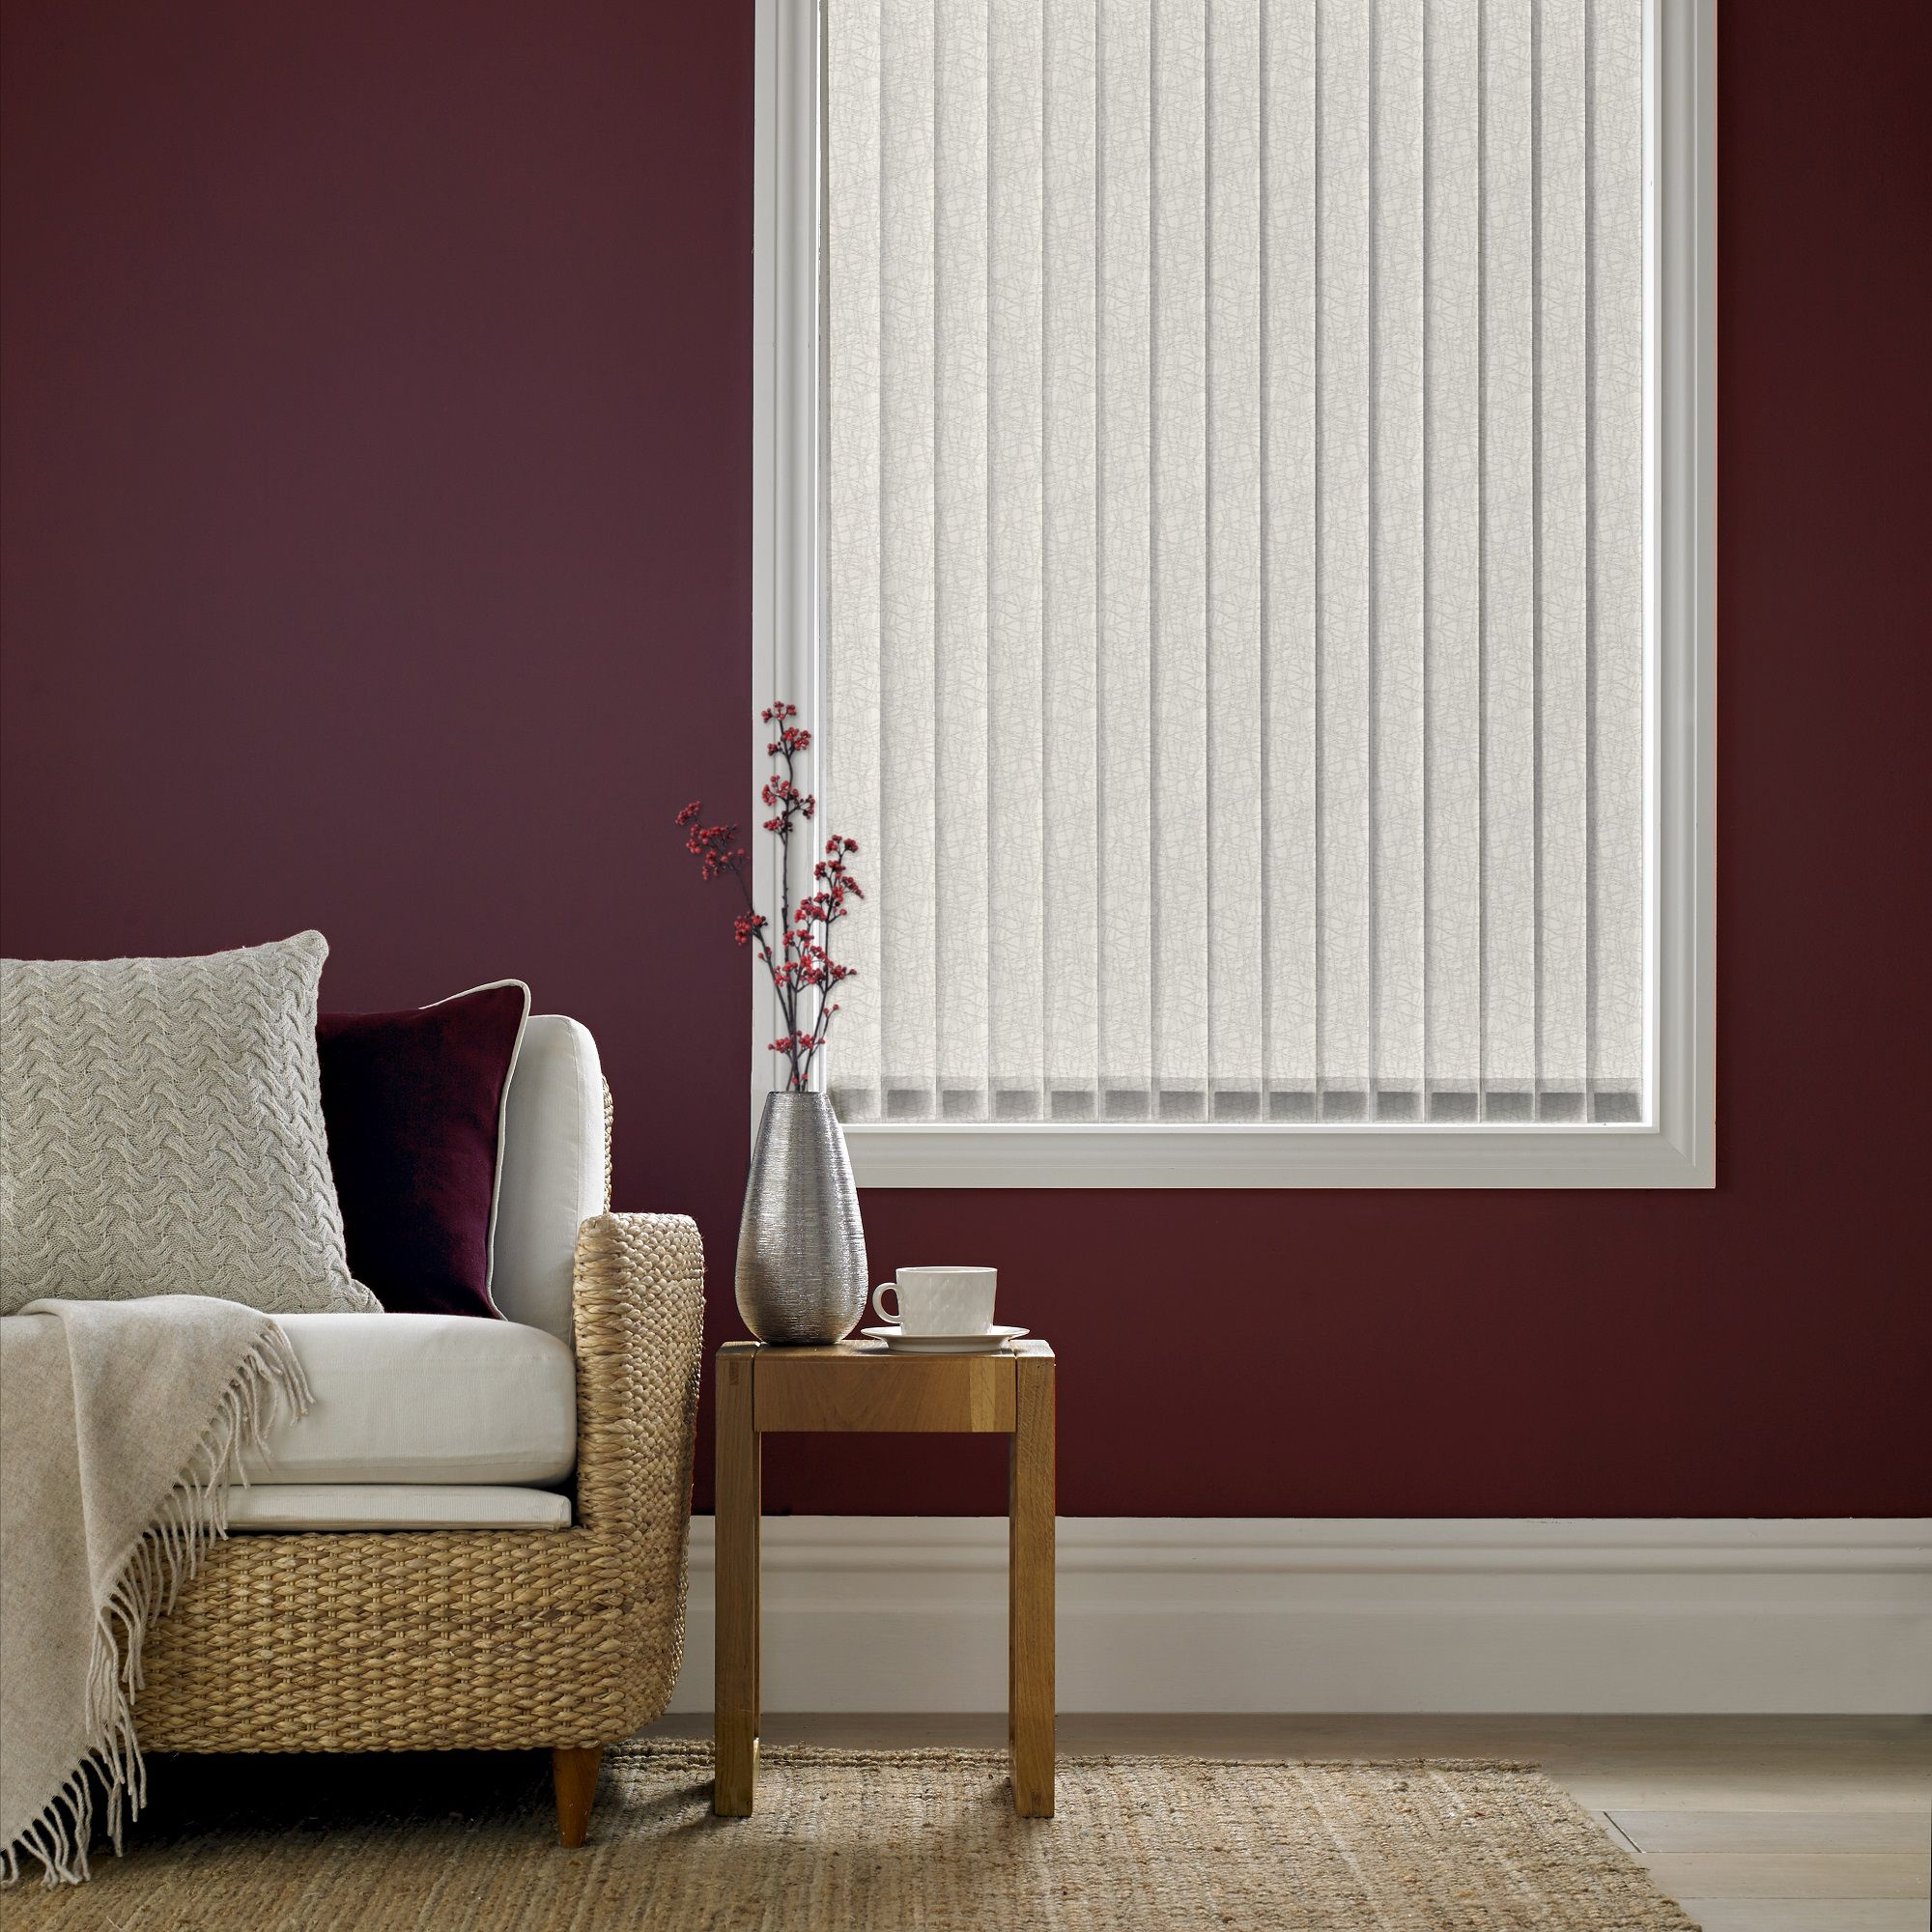 window lowes stunning faux shutter interior photo blind vertical stunninges full of kitchen blinds doors at ideas size com shades patio for and wood inch inspirations windows